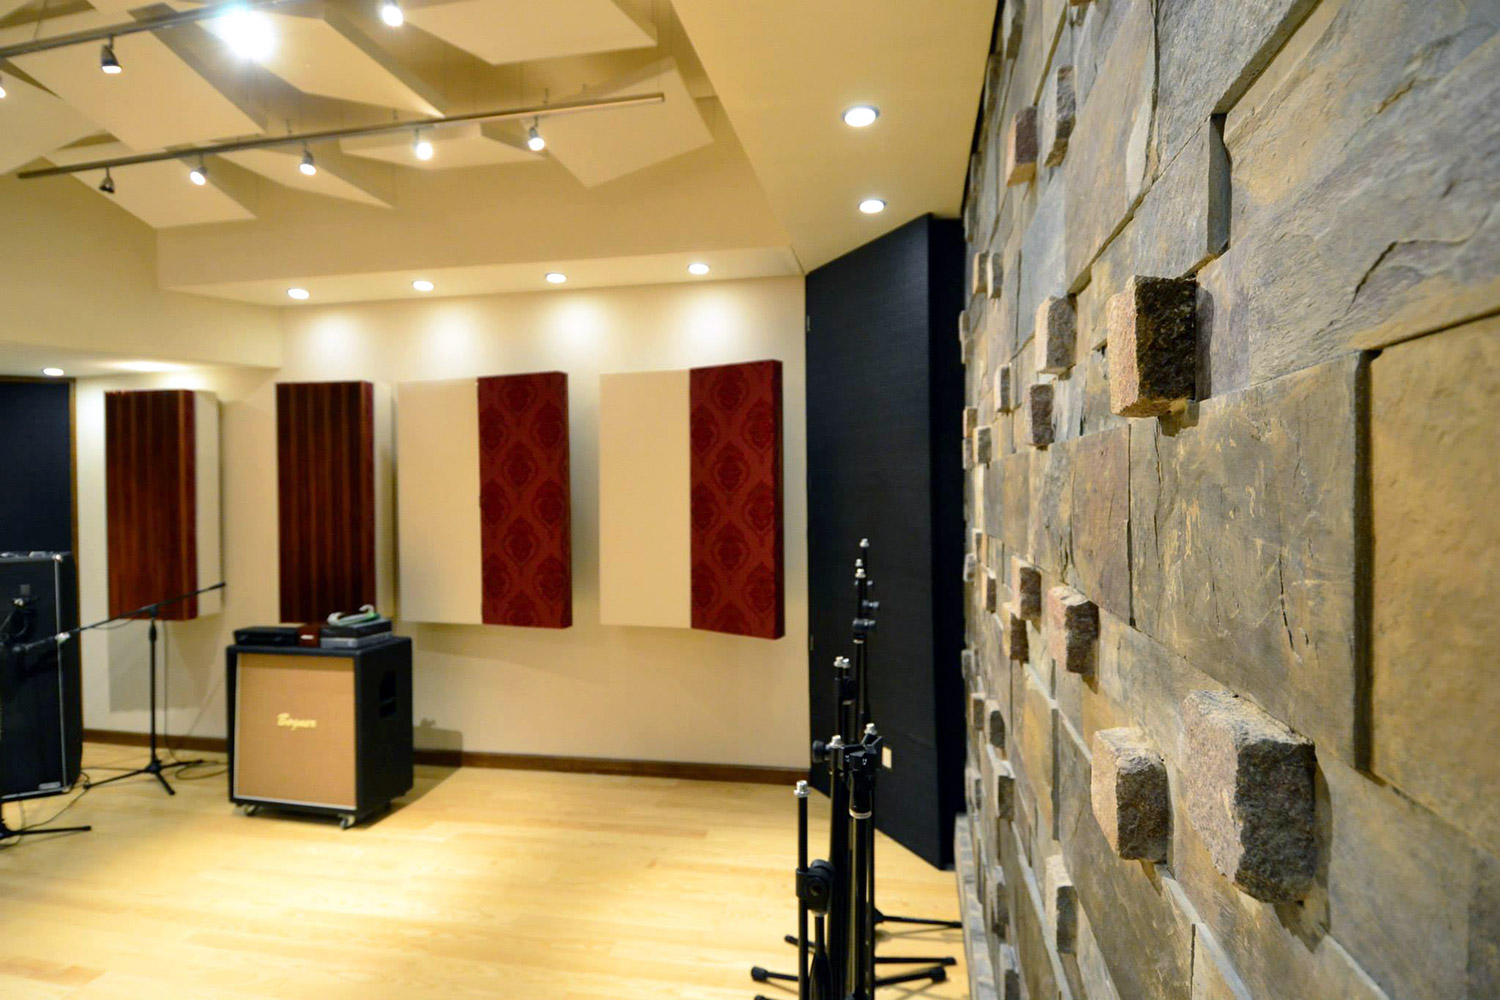 Jose Gentile home recording studio designed by WSDG in Cordoba, Argentina. Live Room wall featuring natural stone wall.